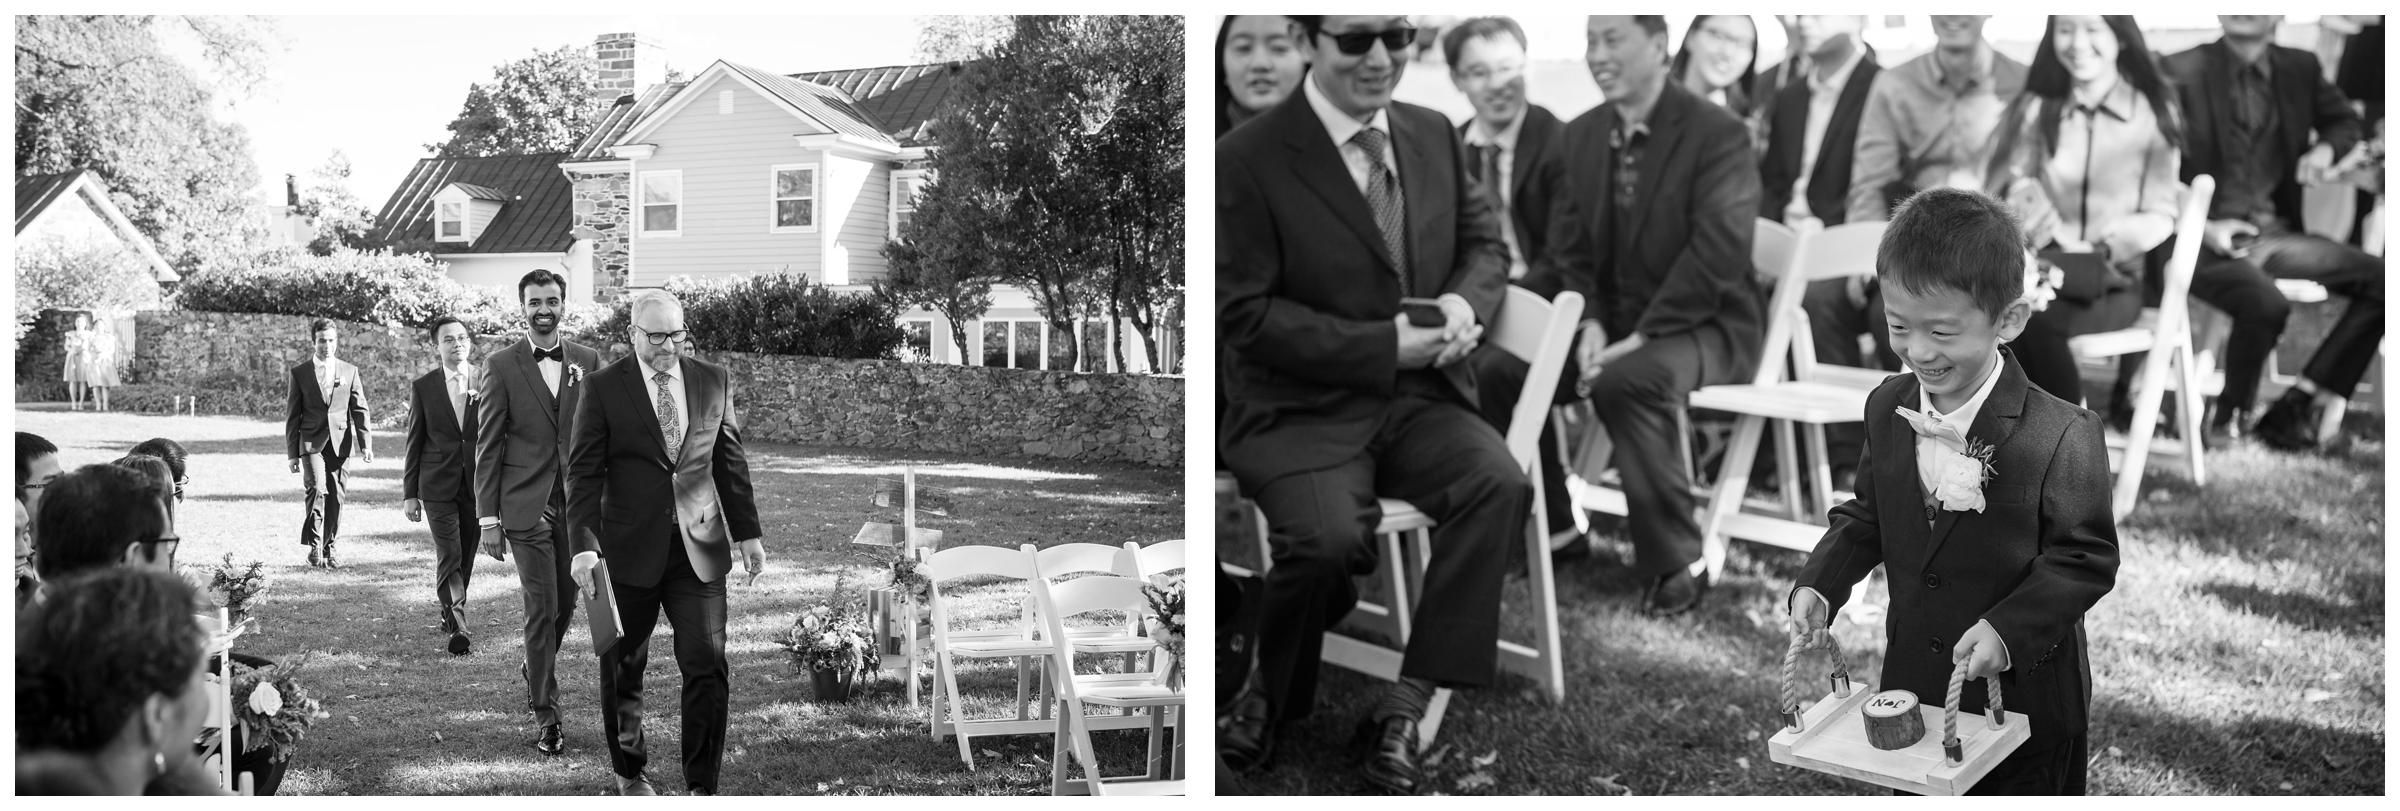 Groomsmen and ring bearer entrance during outdoor wedding ceremony.